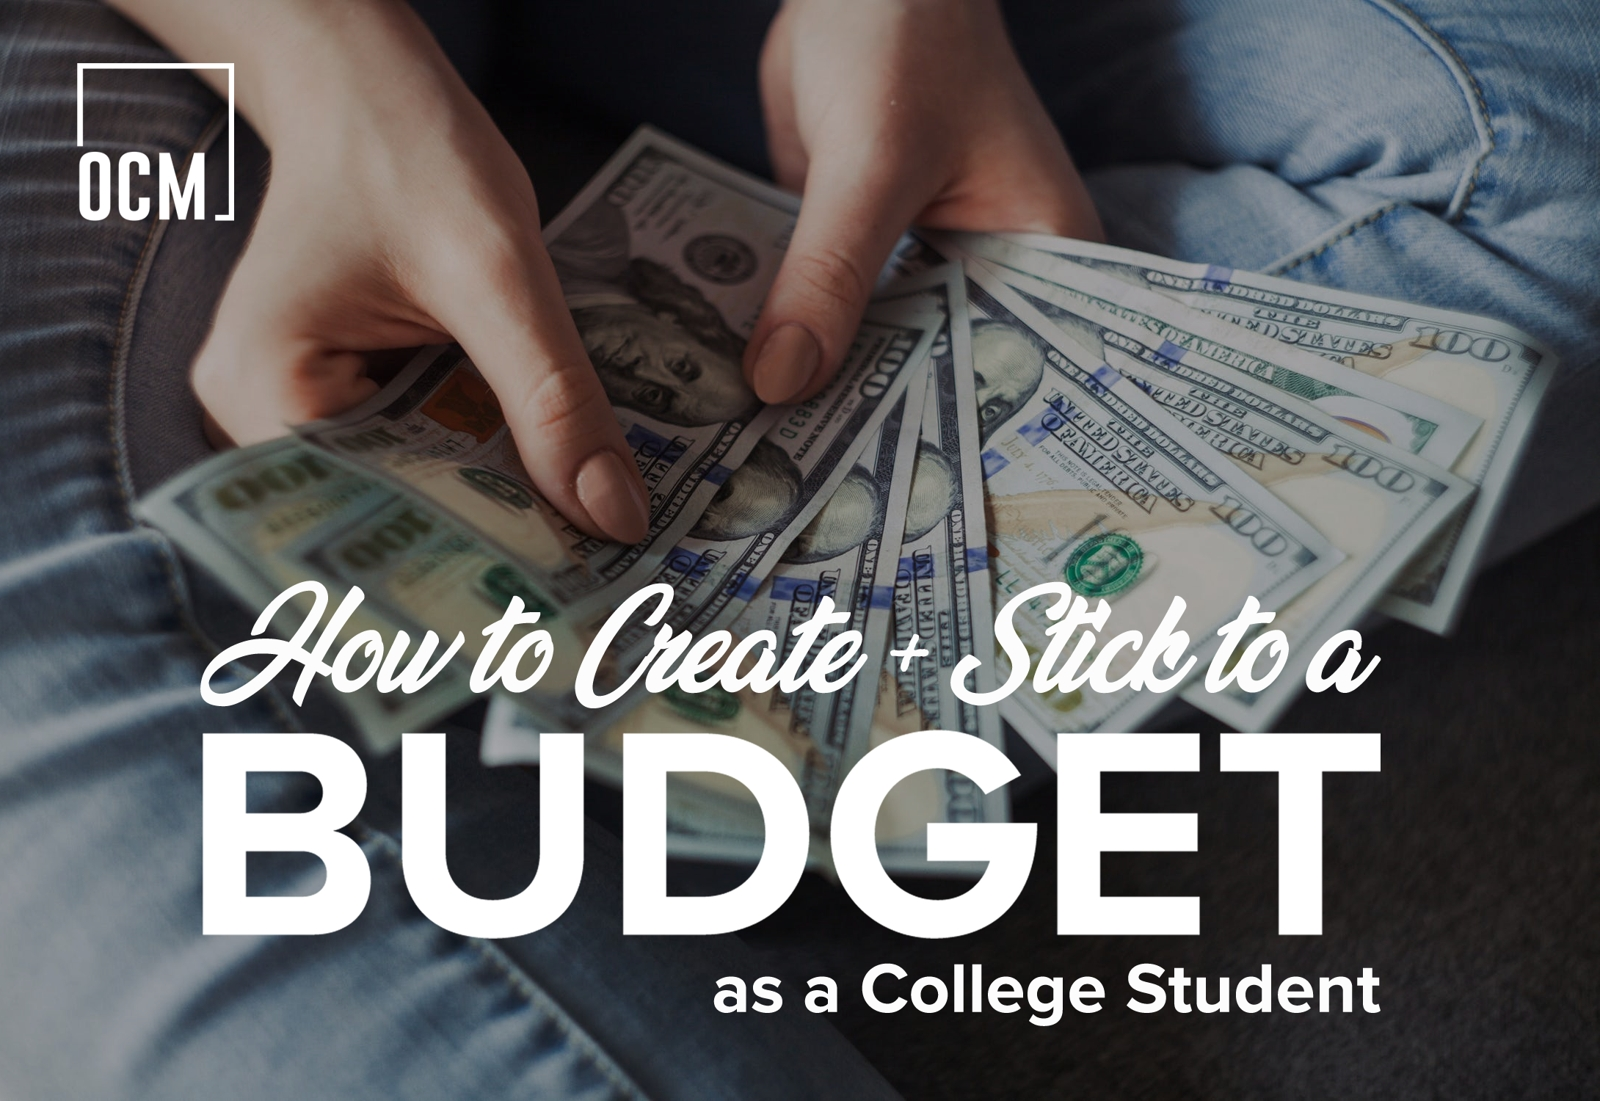 Stick to a Budget as a College Student